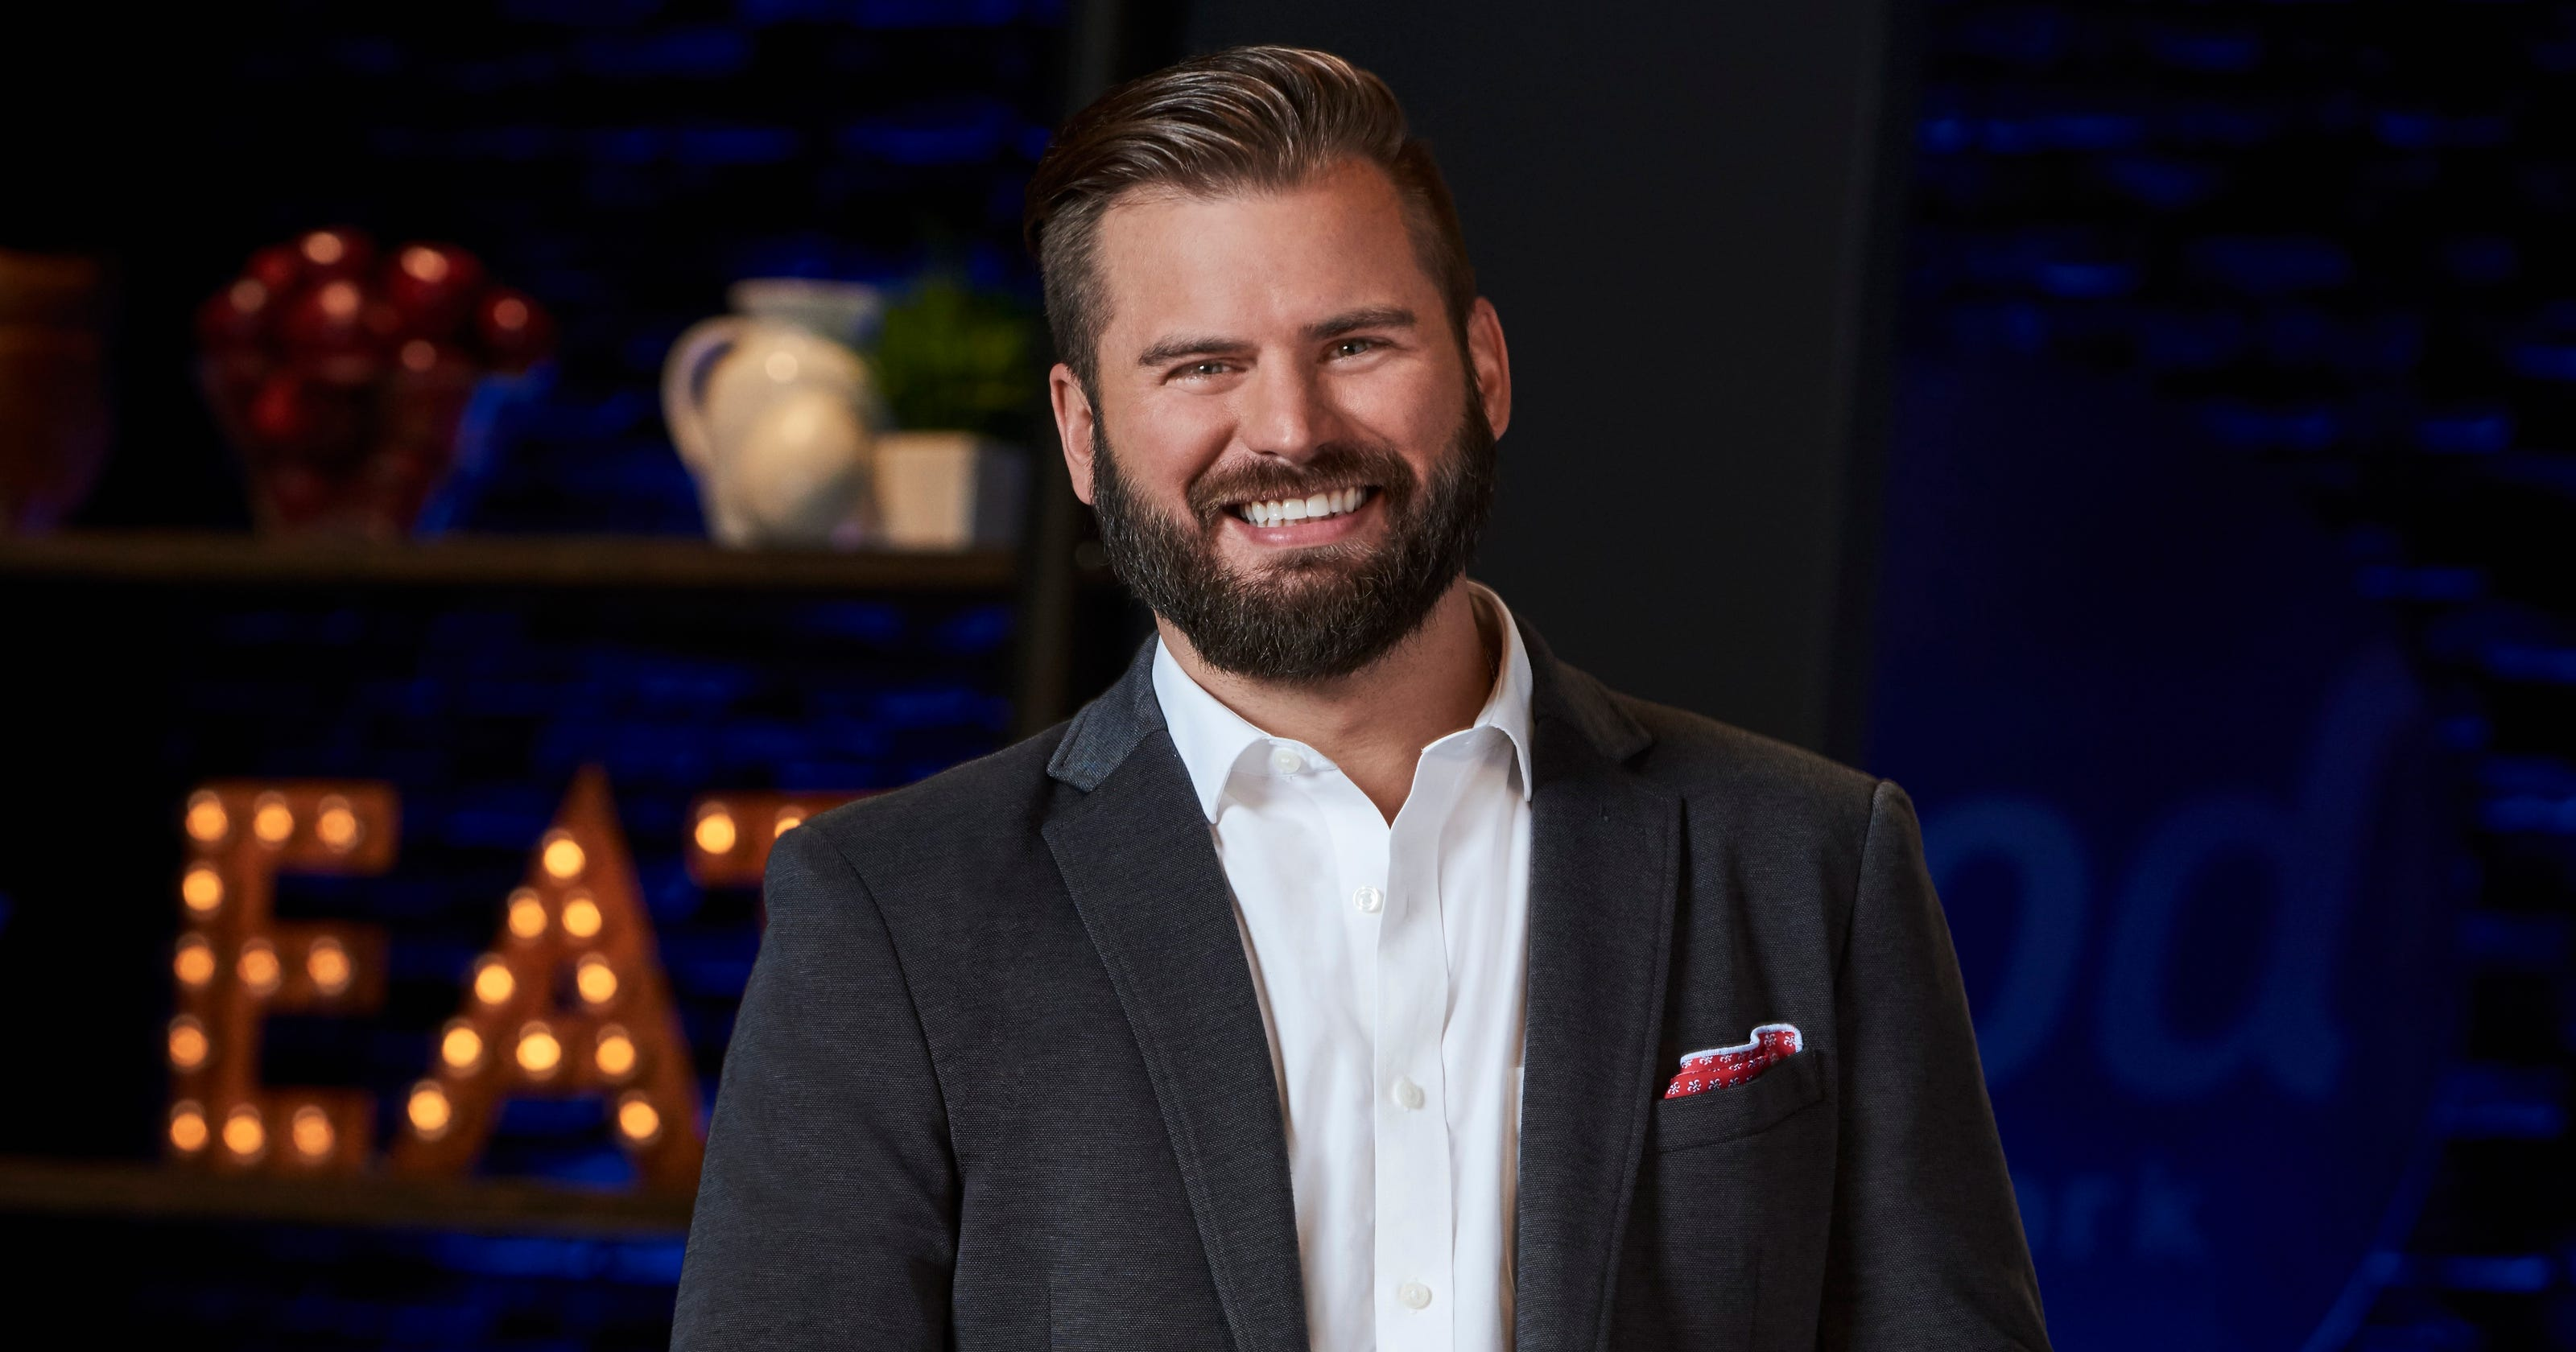 Local Chef To Compete On Food Network Star